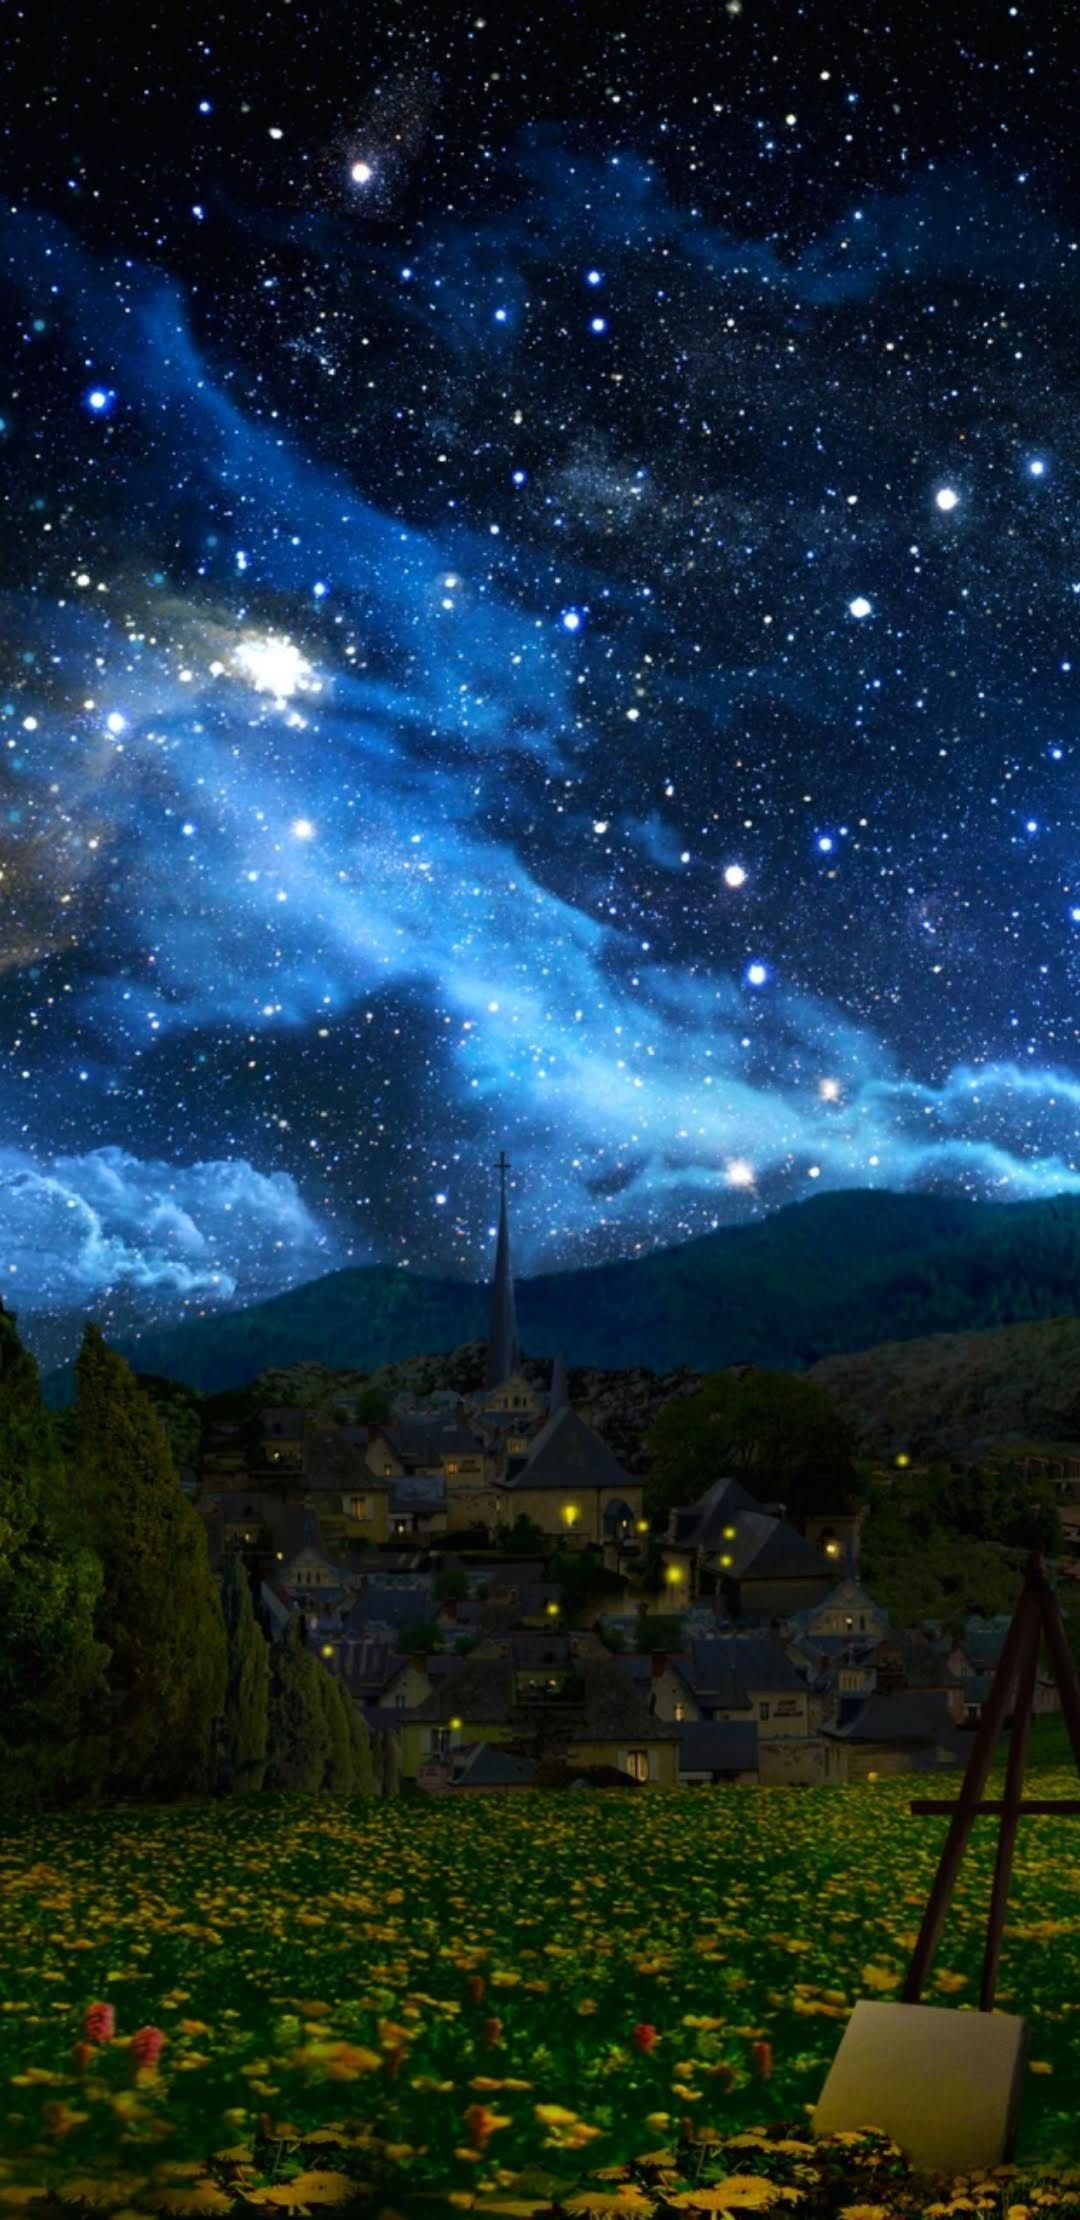 Pin by Aya on at in 2020 | Starry night art, Starry night ...